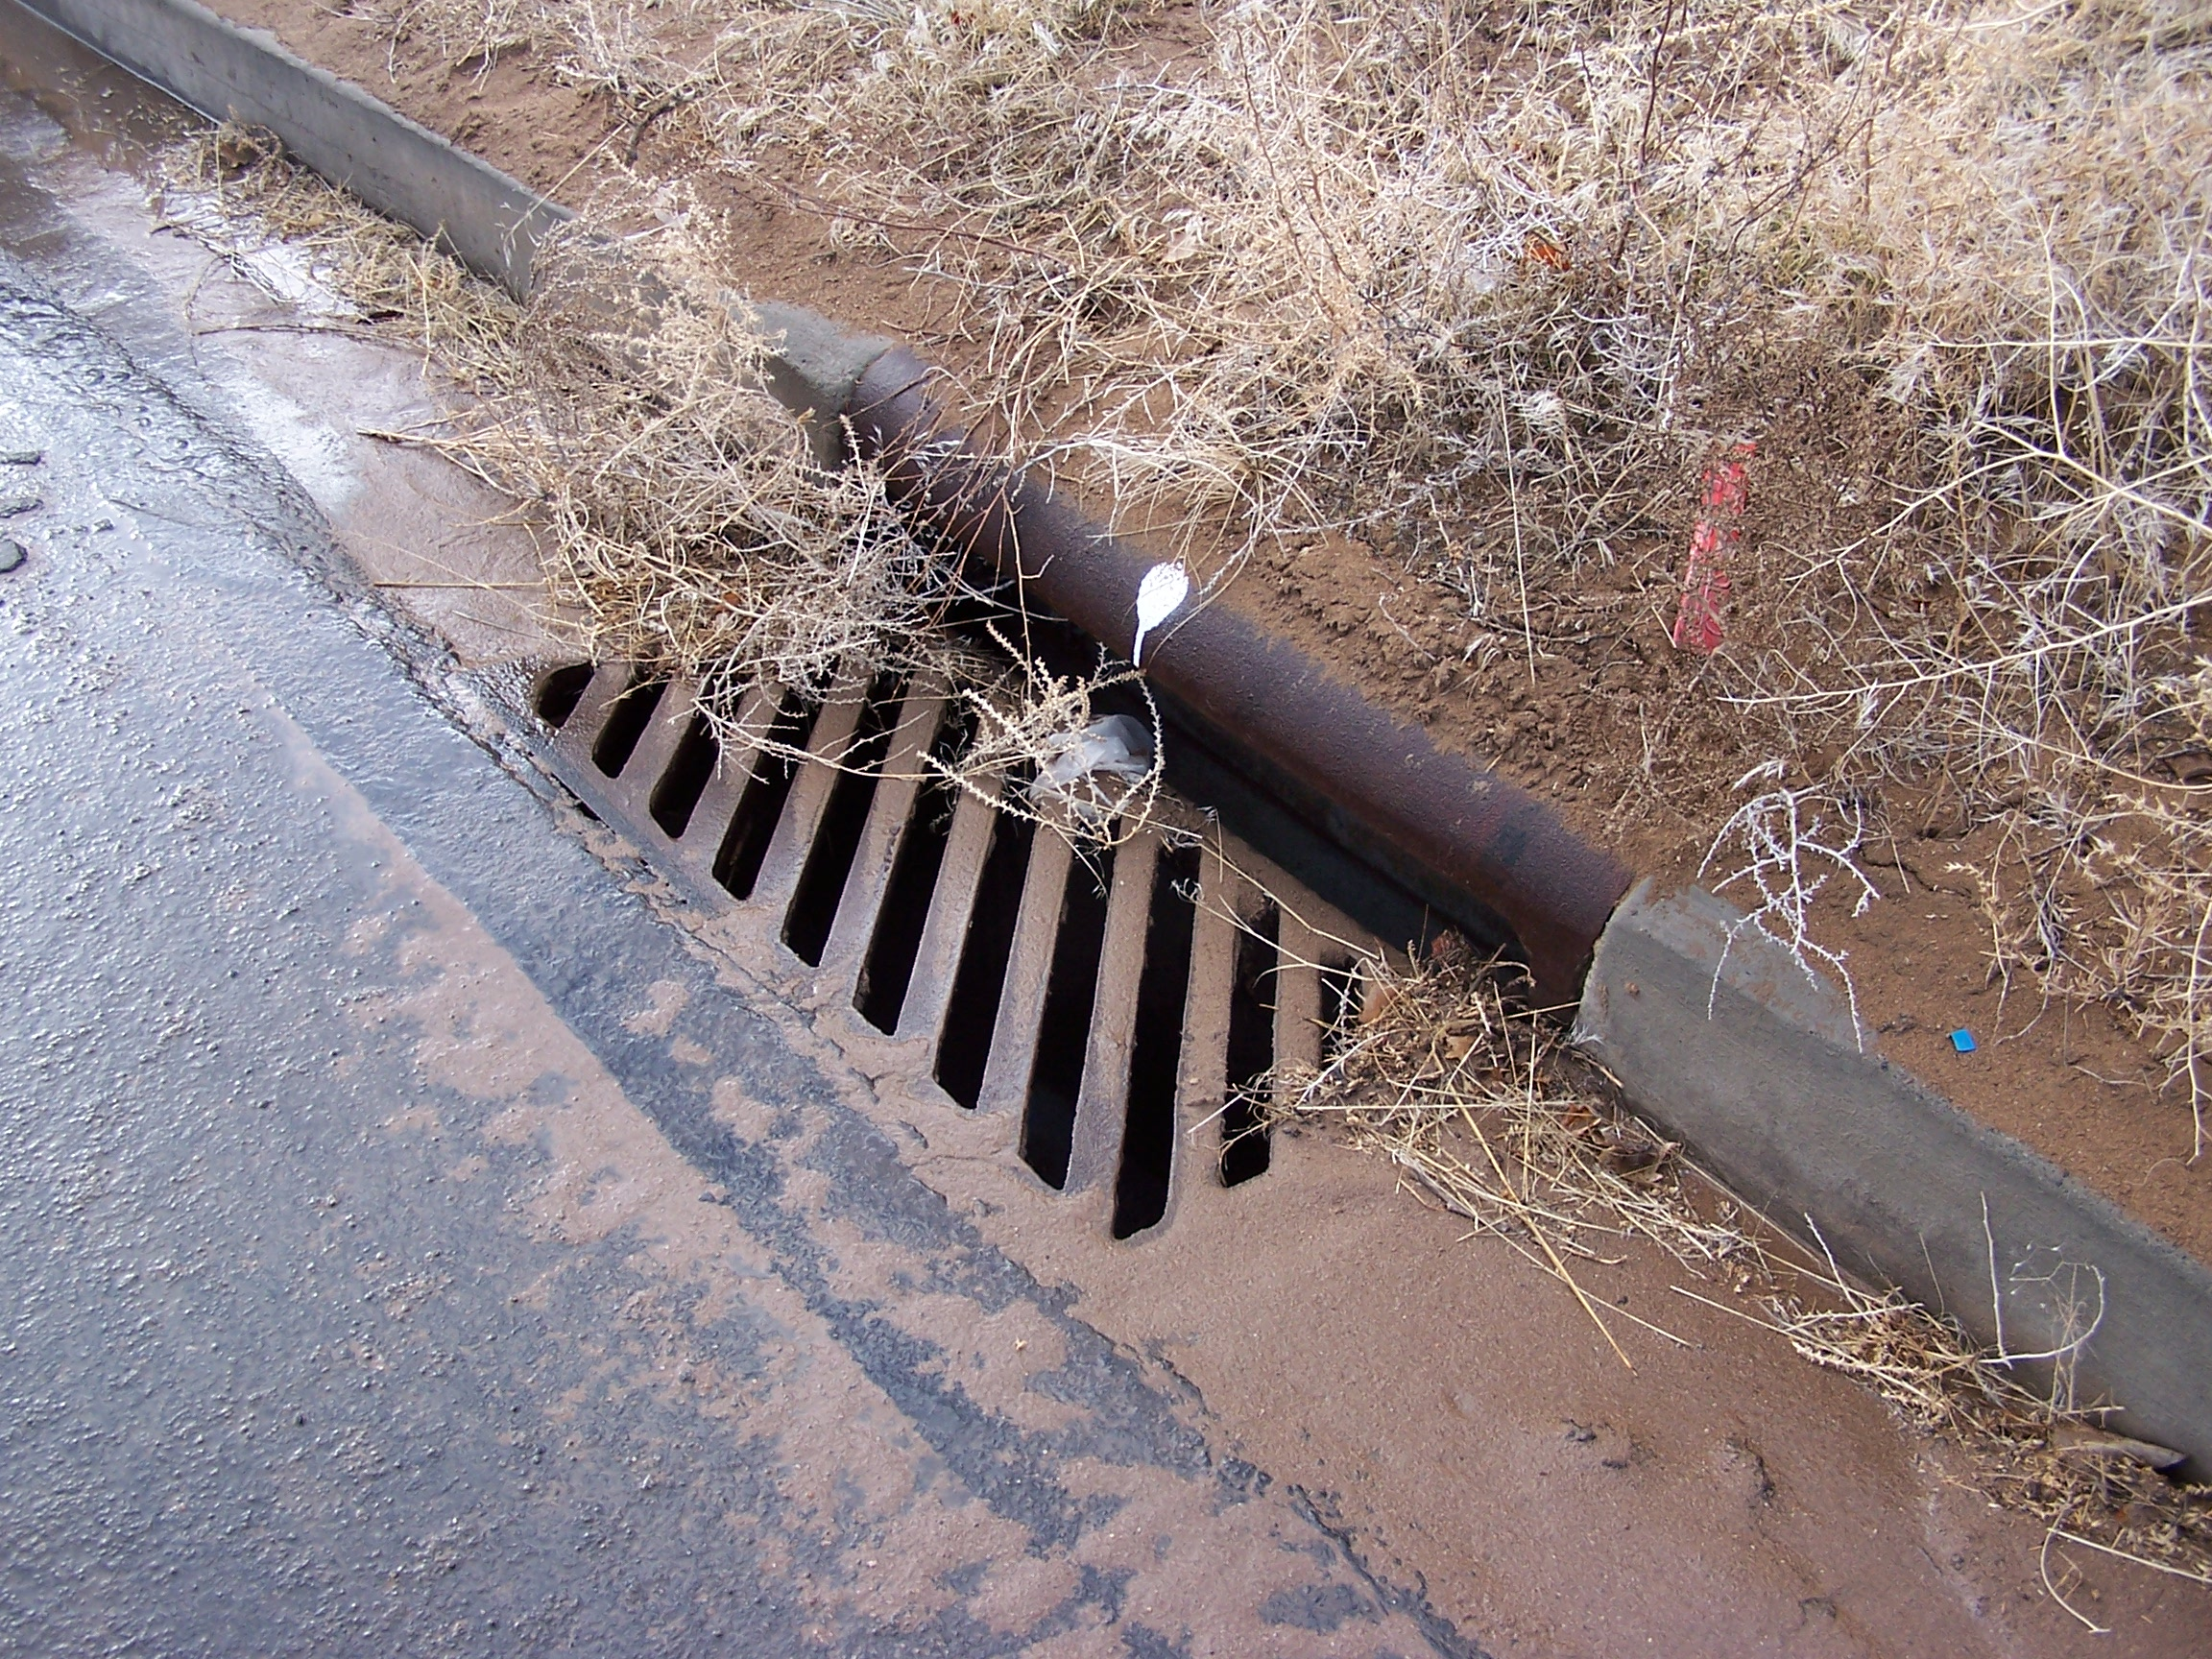 sediment and debris in storm drain